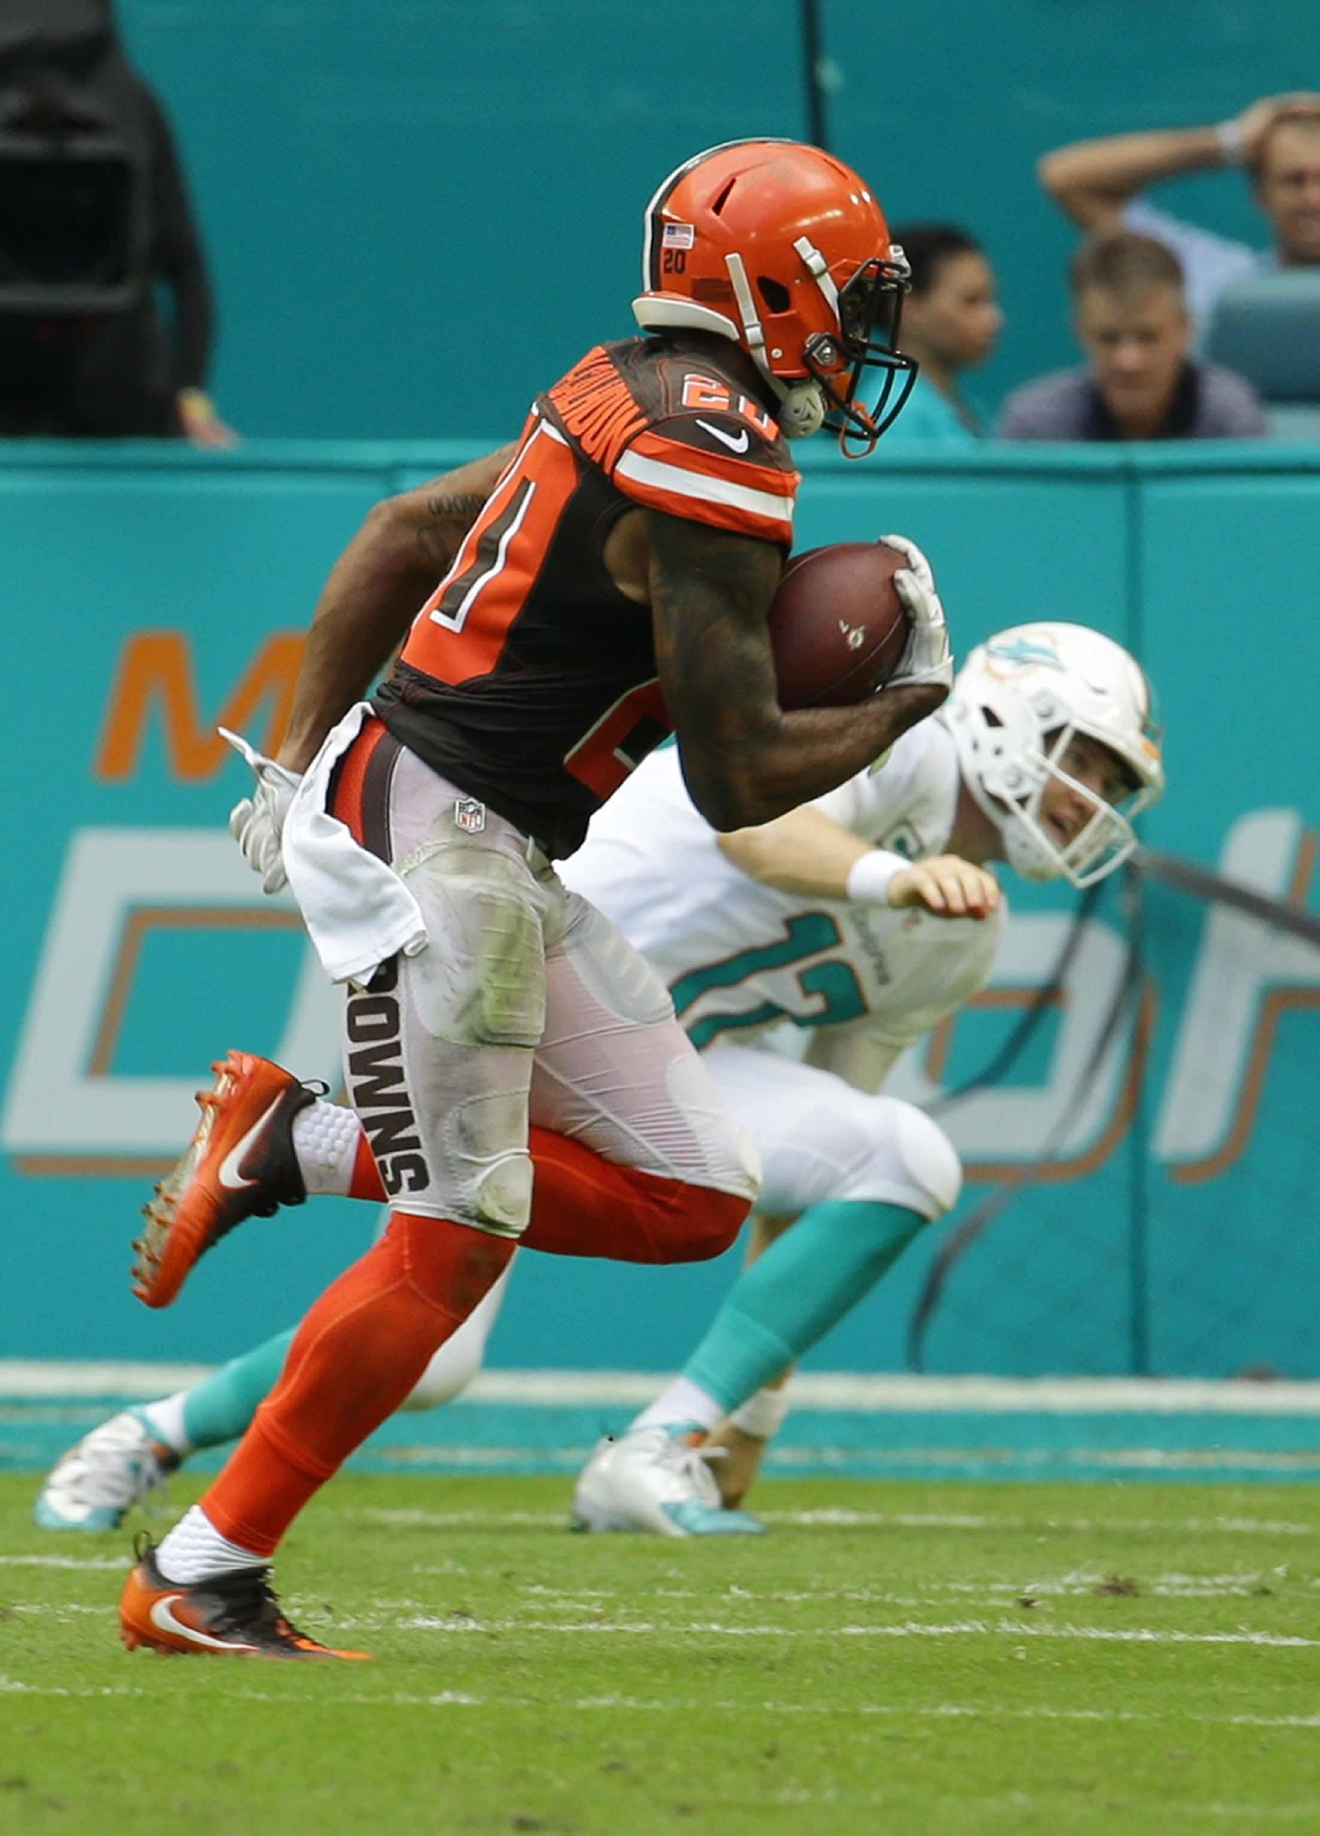 Sept 29 bengals opponent story links miami dolphins wkrc cleveland browns cornerback briean boddy calhoun 20 runs for a touchdown after intercepting voltagebd Image collections